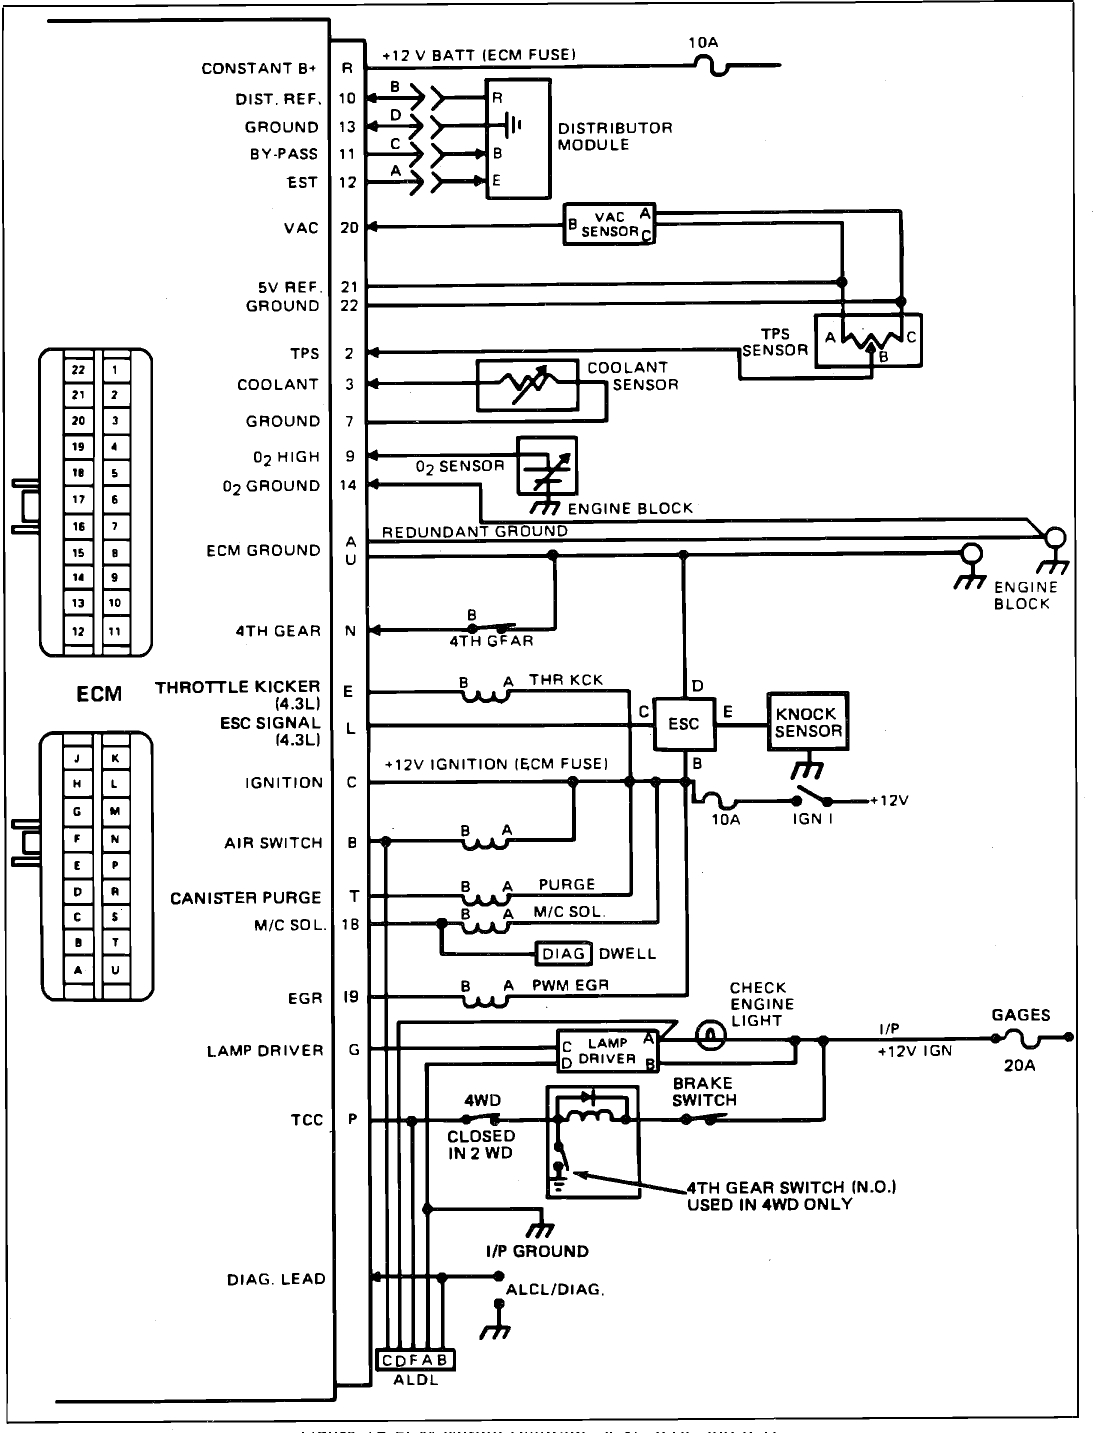 98 Chevy Truck Fuse Box Wiring Library Diagram For 1998 Image Details House Rh Maxturner Co Silverado